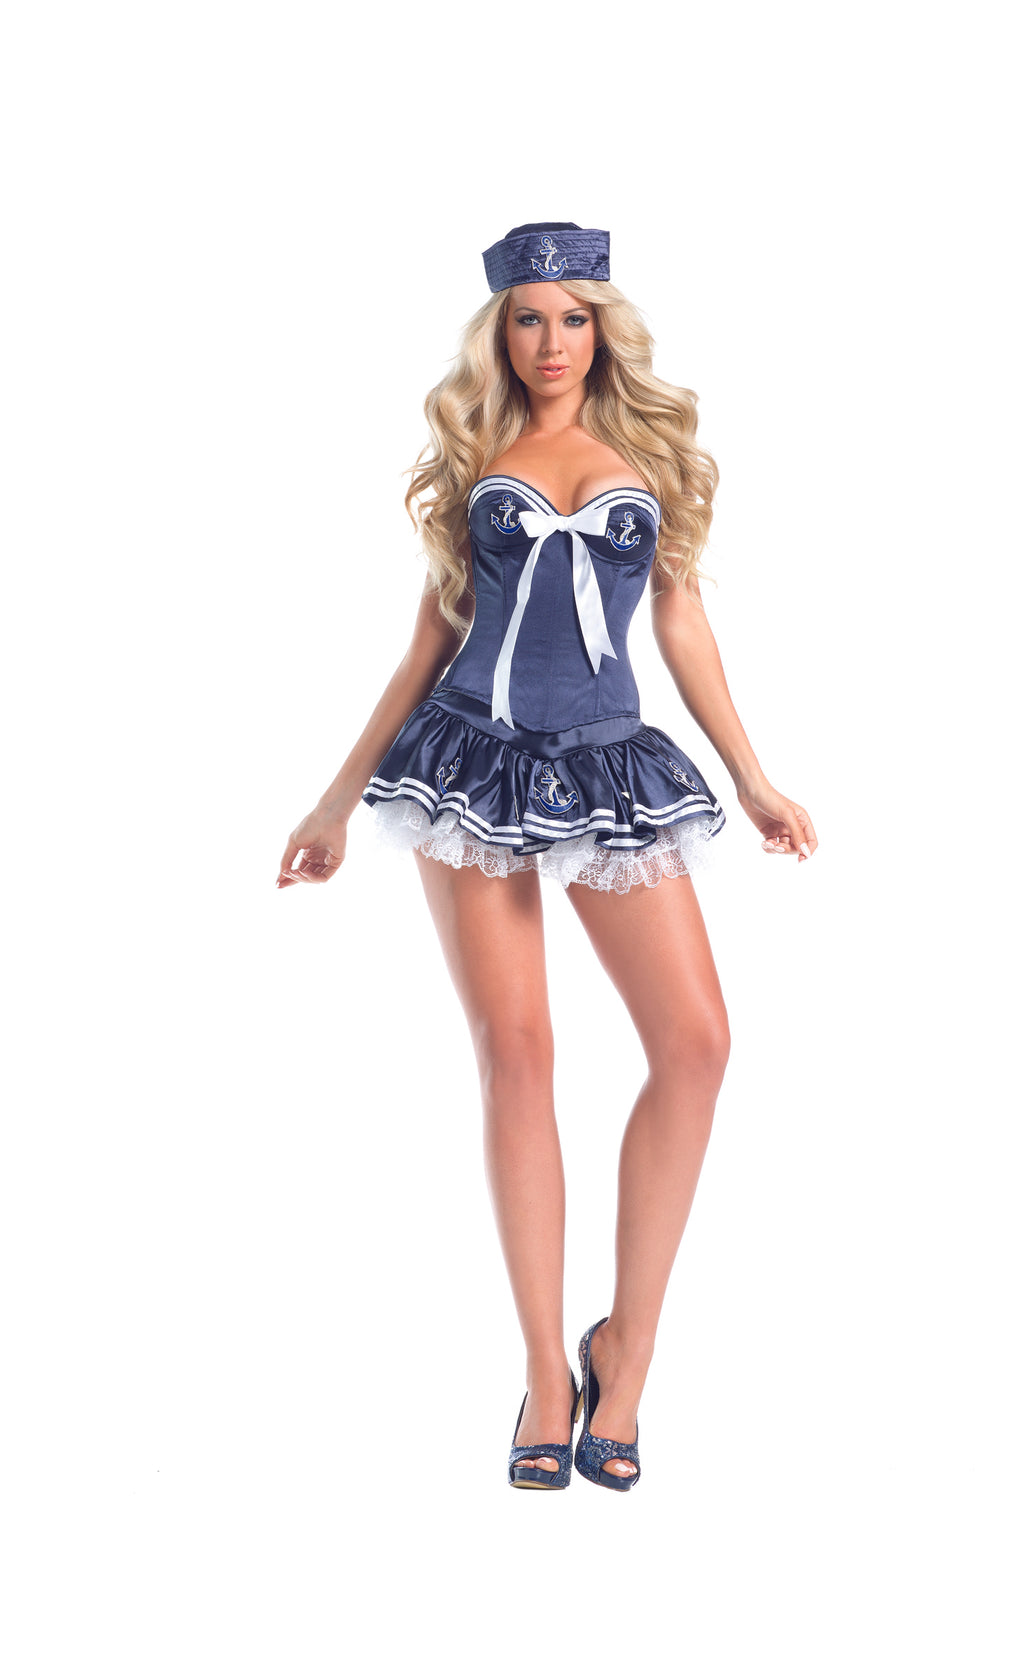 Adult-Women's-4-Piece-Sailor-Captain-Navy-Blue-Dress-Halloween-Party-Costume